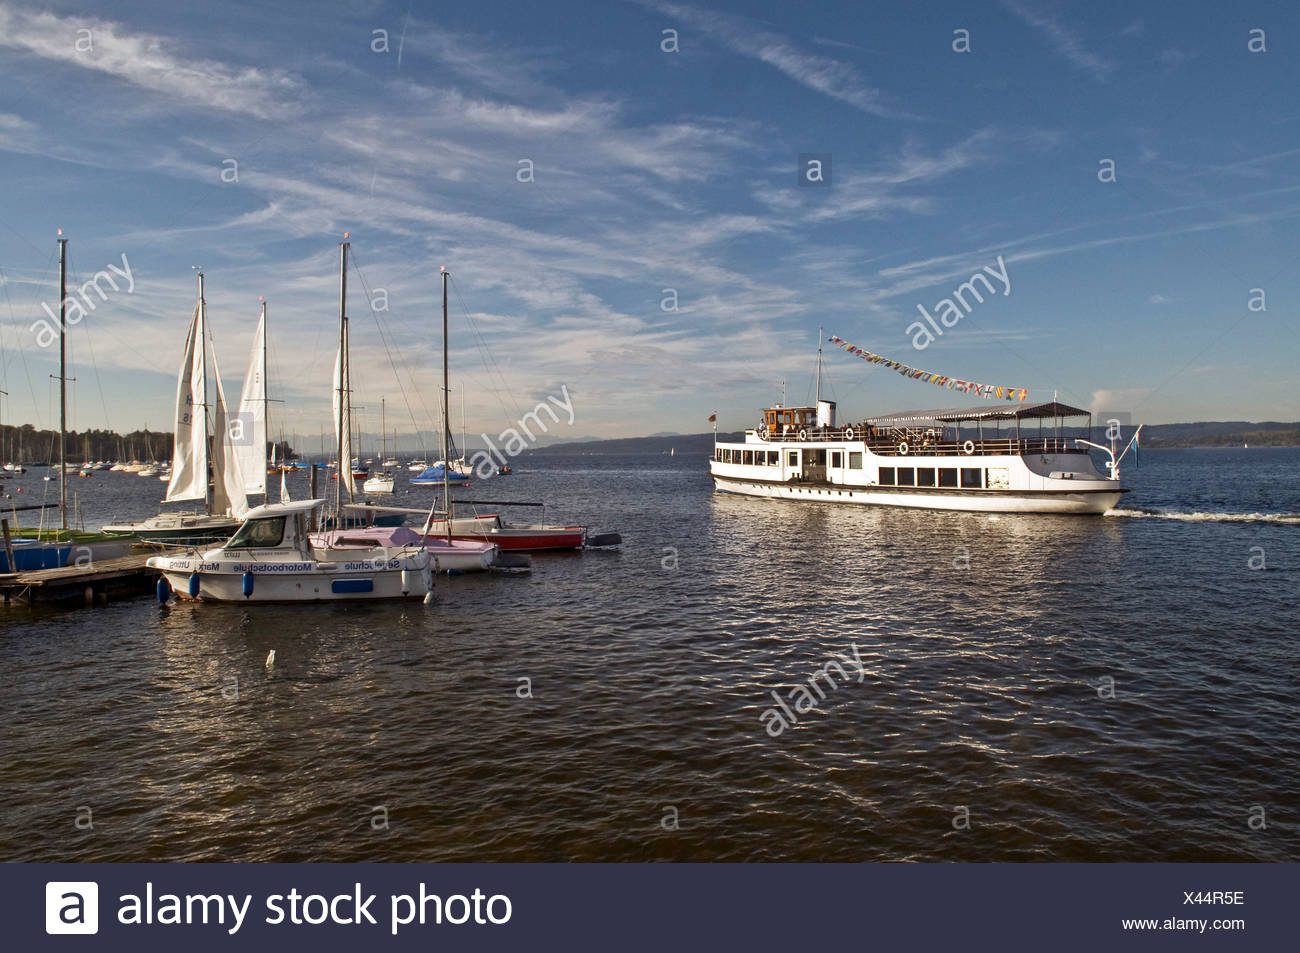 Steamer Utting casting off, Lake Ammersee, Bavaria, Germany, Europe Stock Photo